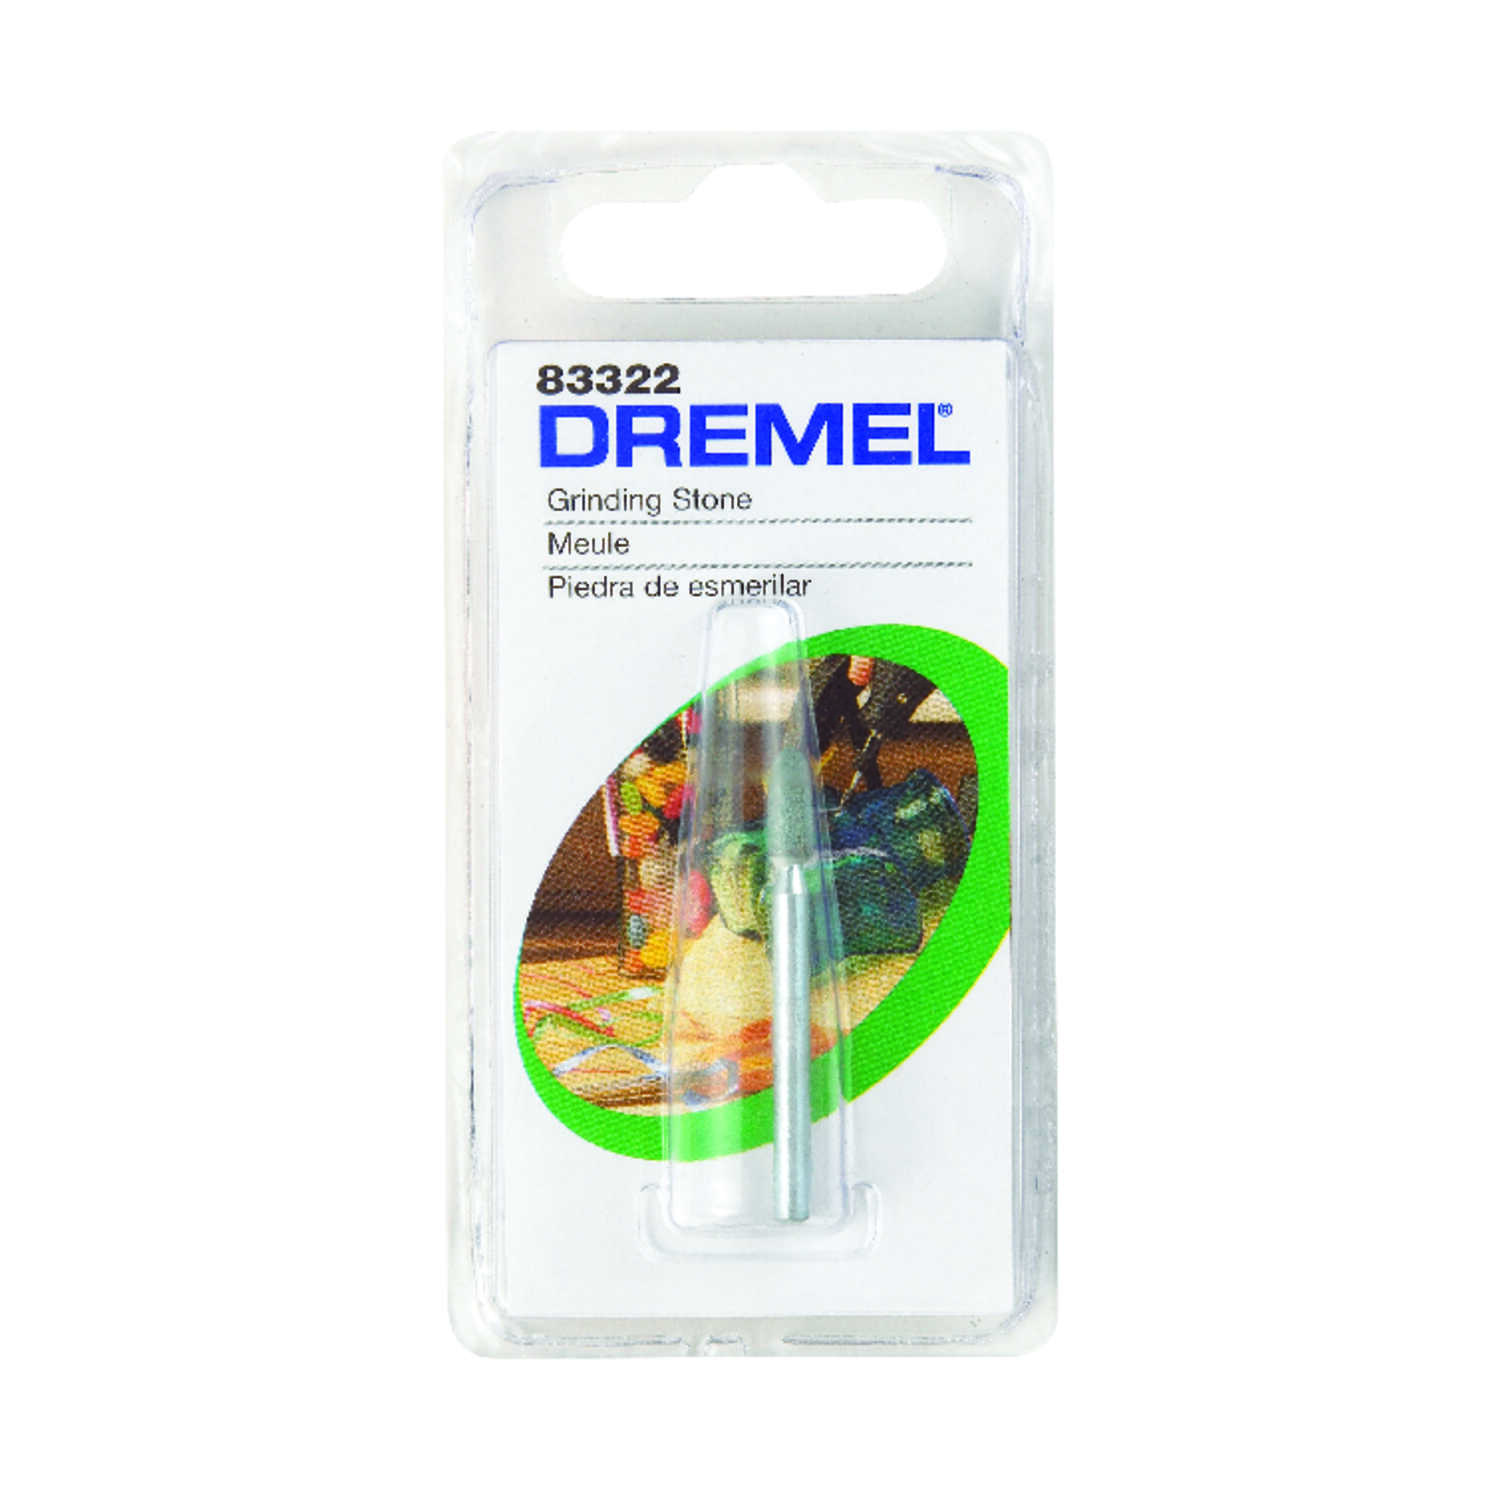 Dremel  1/8 in. L x 1/8 in. Dia. Silicon Carbide  Grinding Stone  Conical  35000 rpm 1 pc.